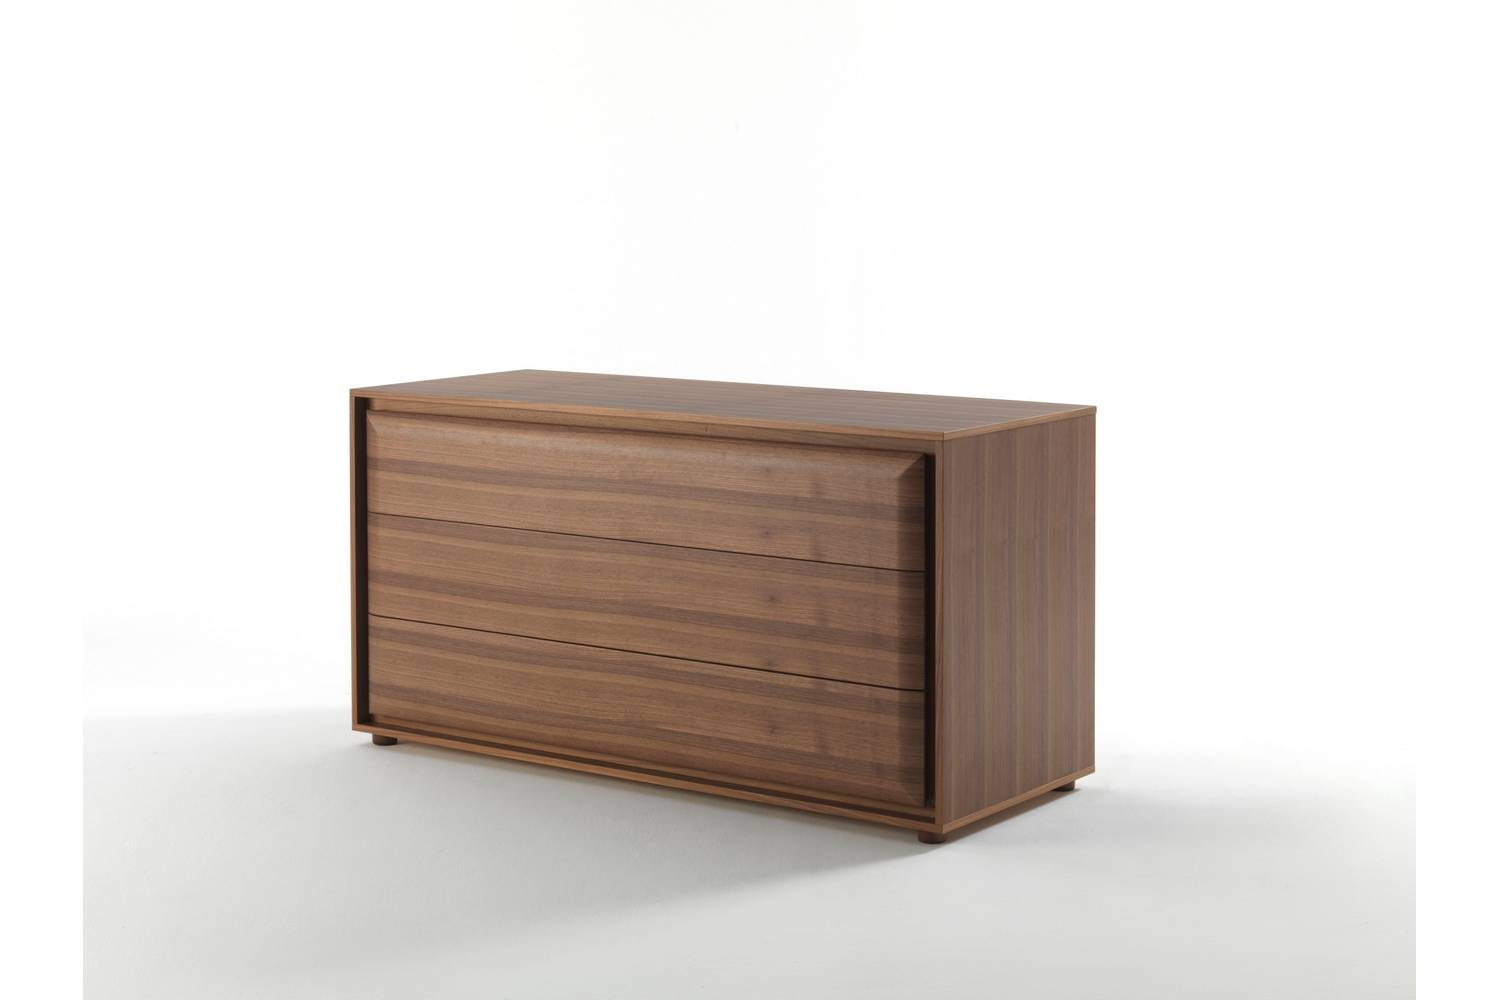 Hamilton Chest of Drawers by Marelli & Molteni for Porada